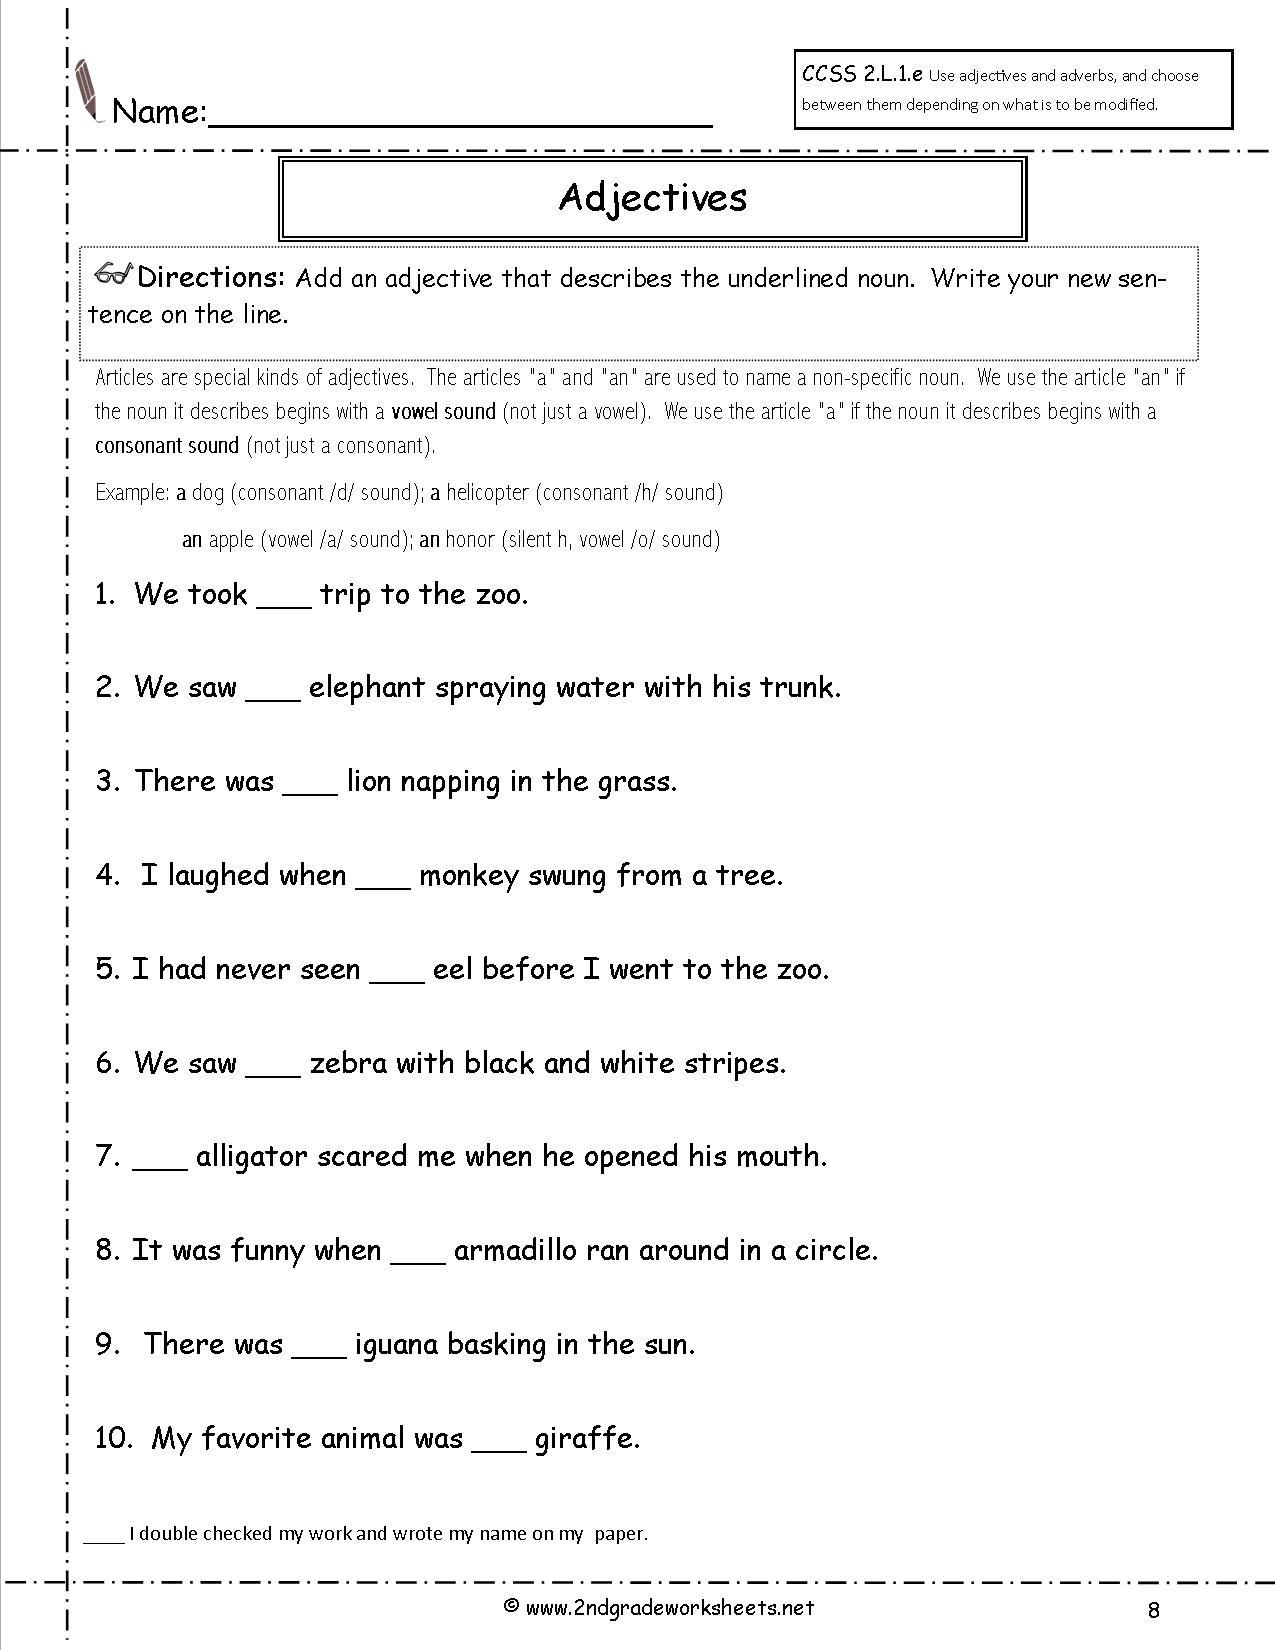 Article Adjective Practice Worksheet